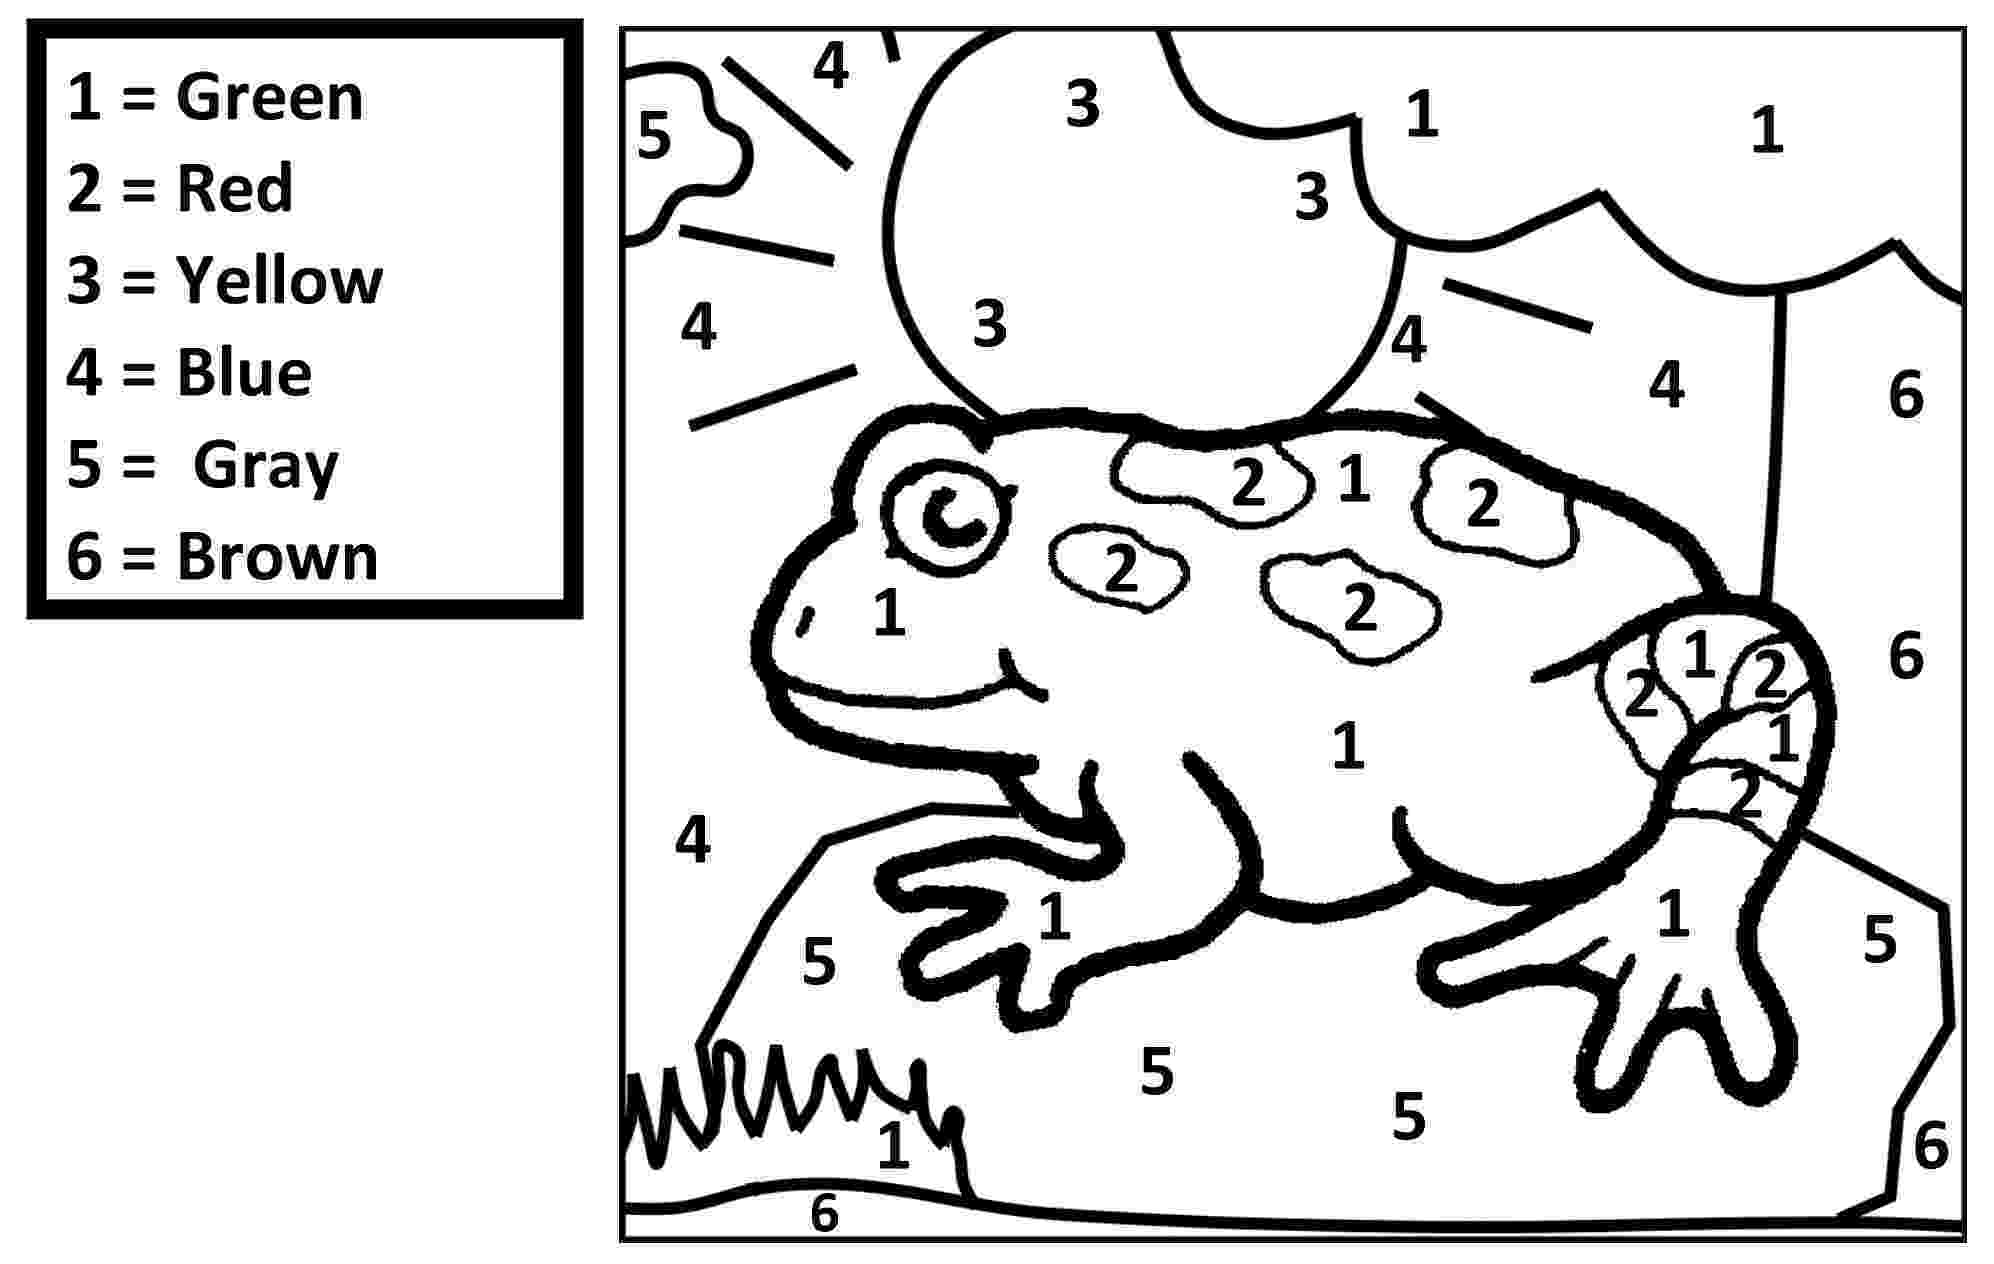 frog color by number color number find jesus name 464788 coloring pages for frog by number color